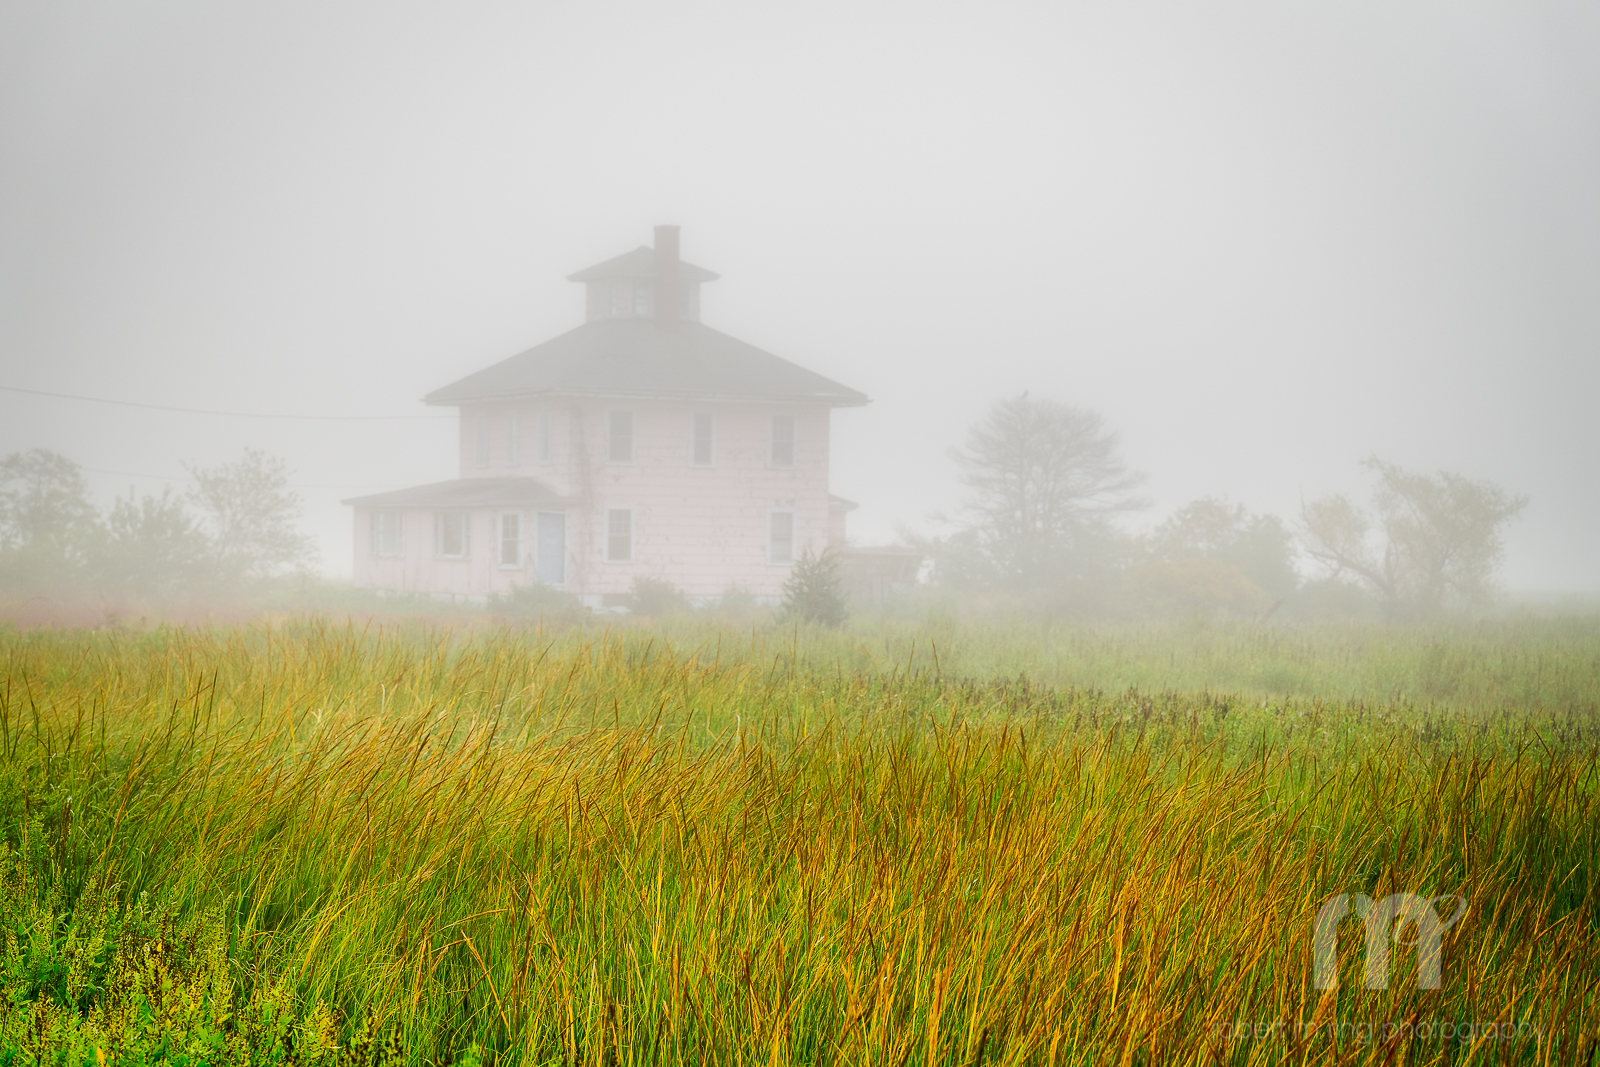 Fog, Foggy, Pink House, New England, North Shore, scenic, landscape, essex county, photo